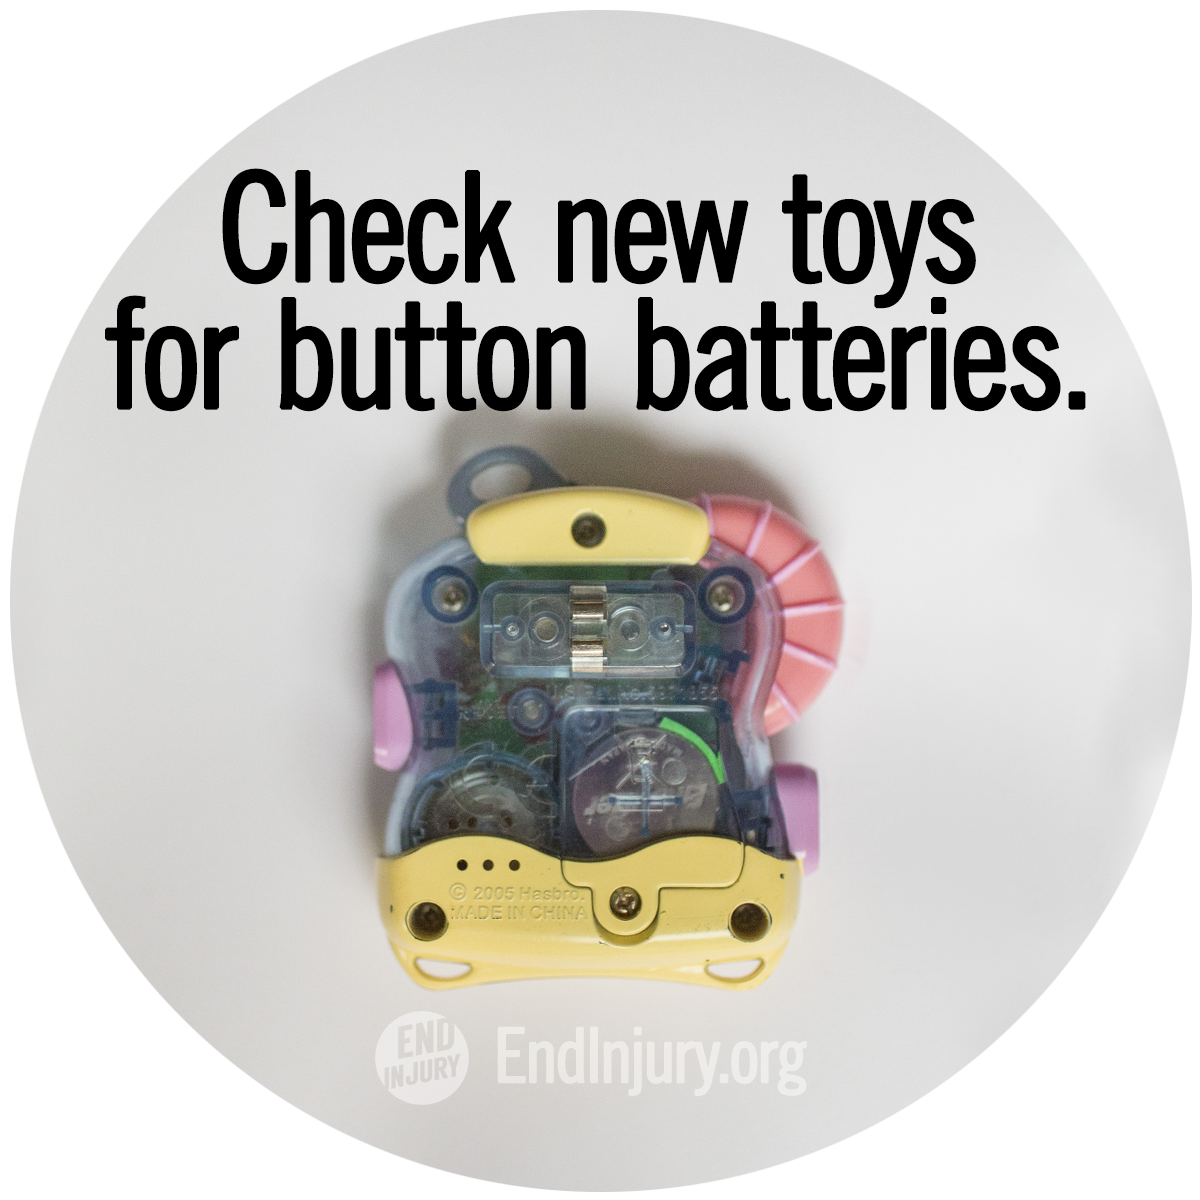 button-batteries-check-toys-action-photo.png